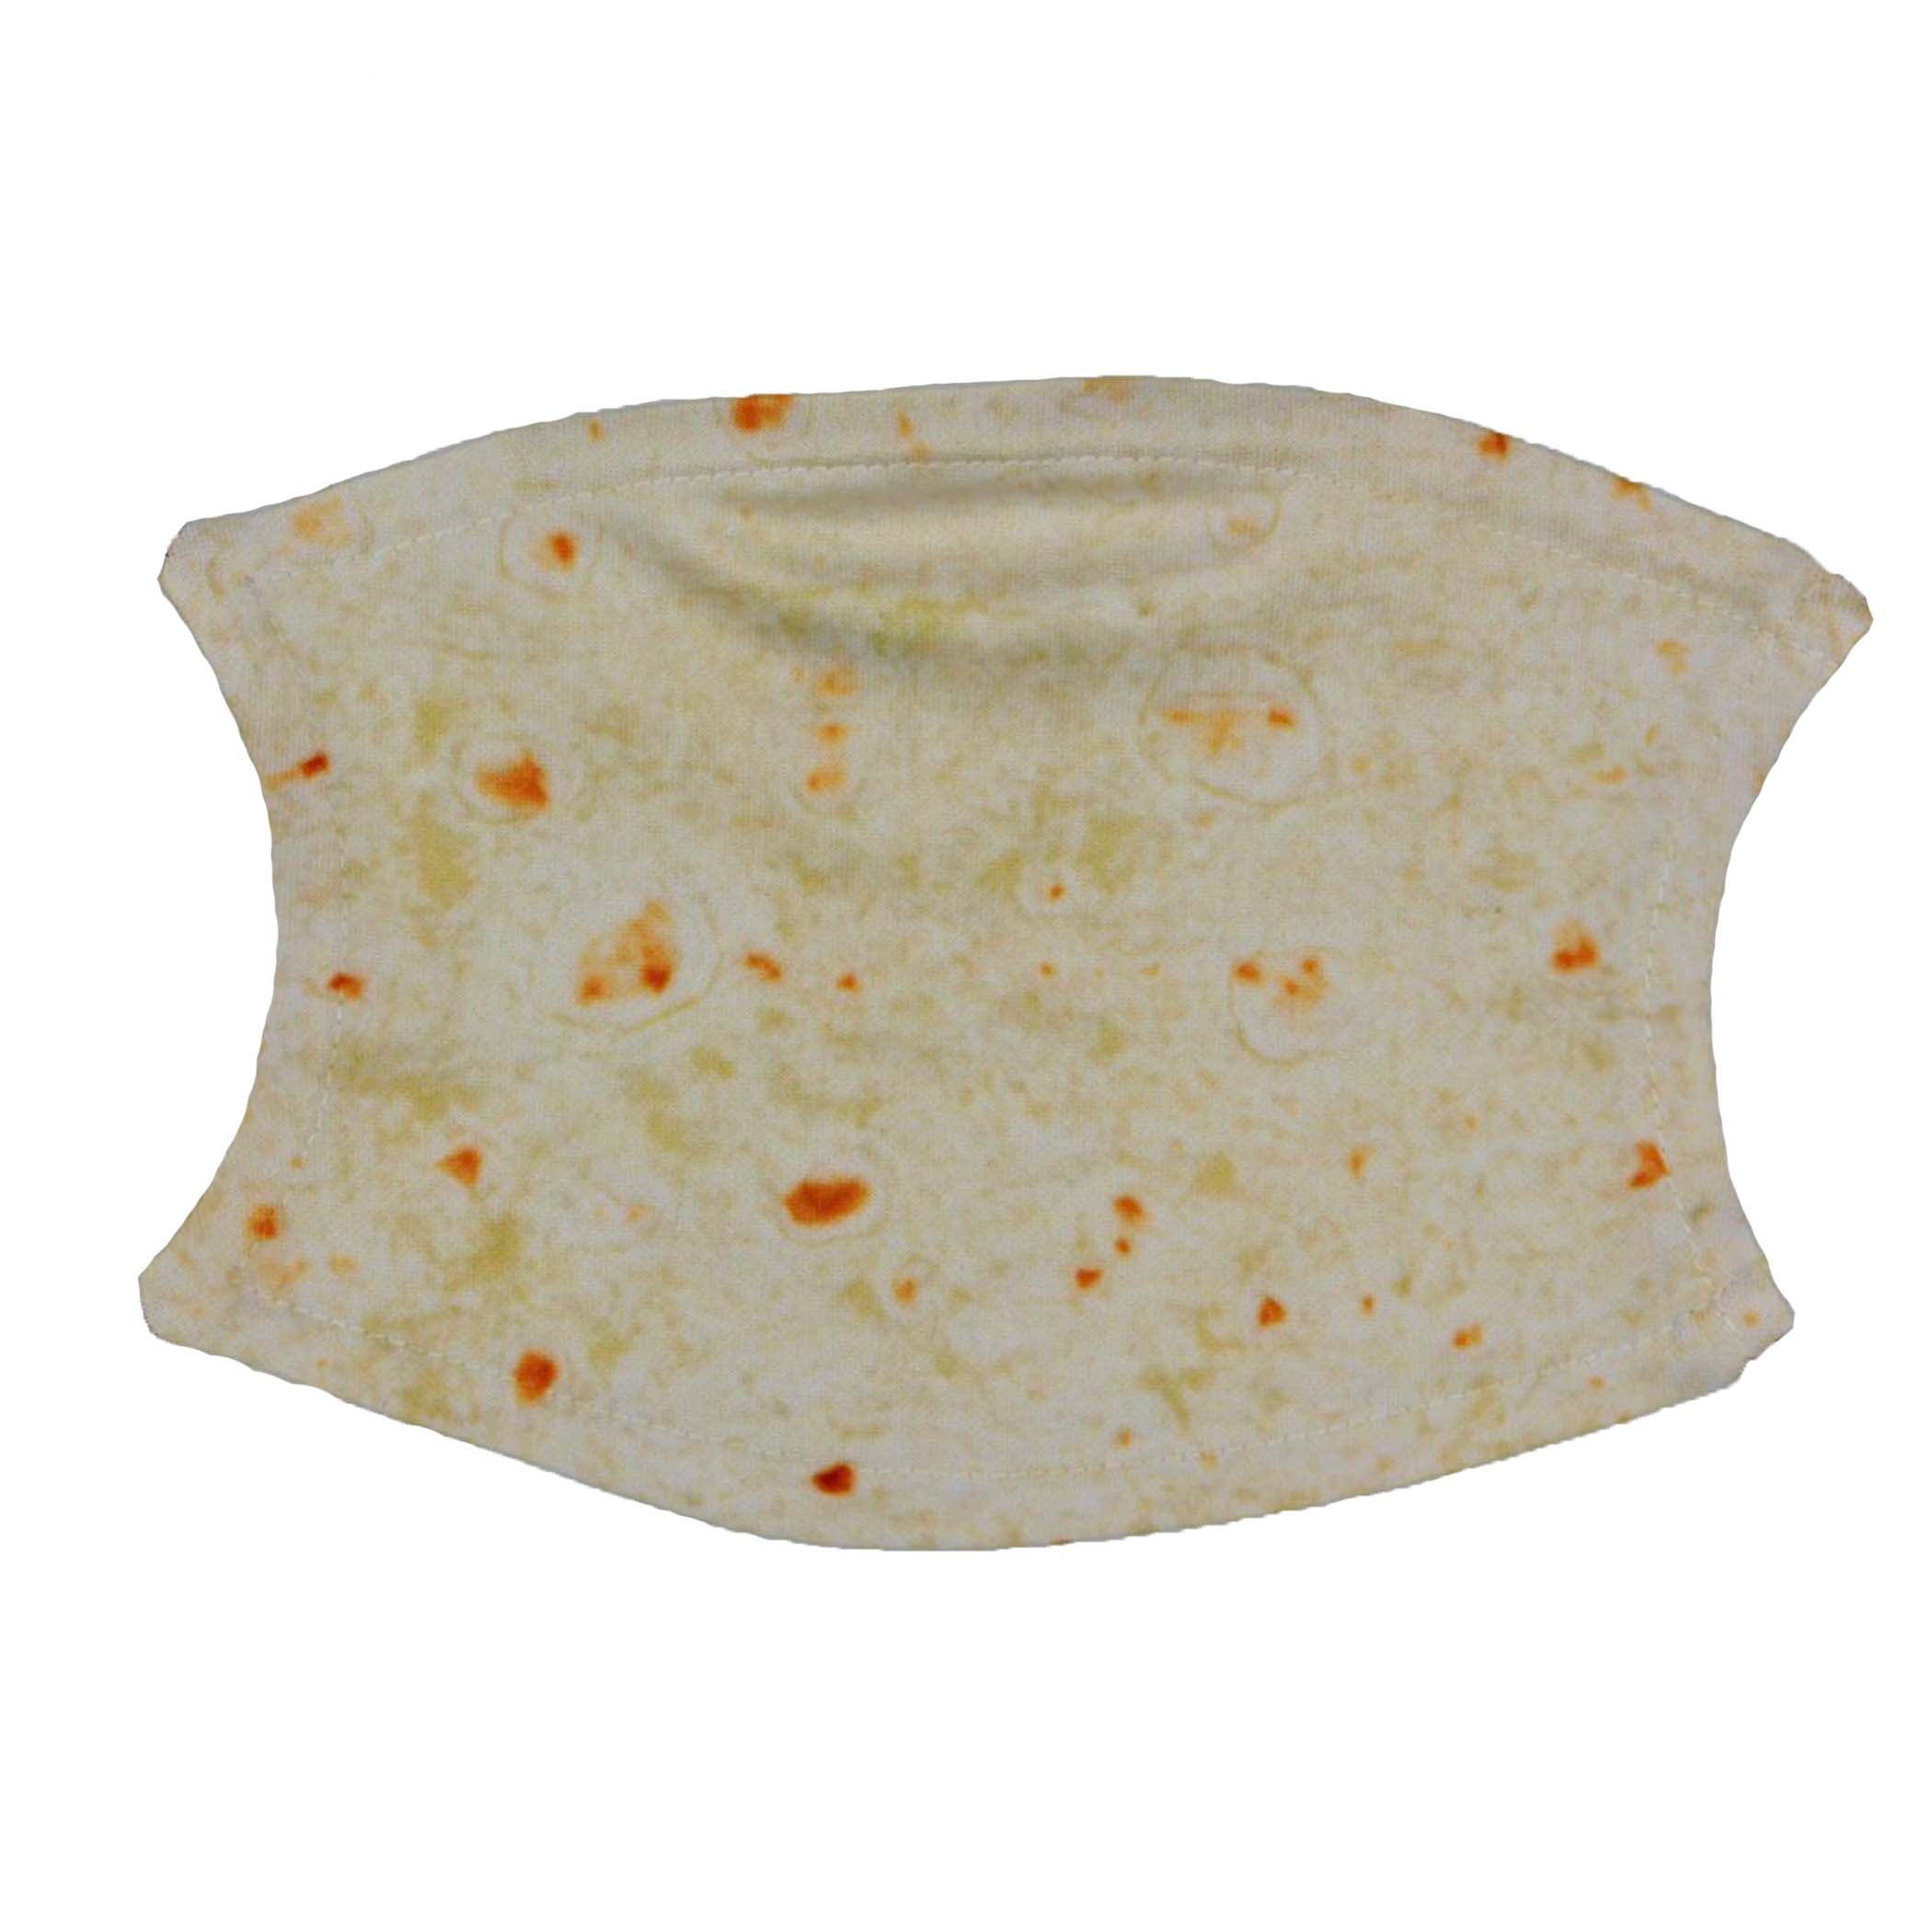 THE TORTILLA MASK